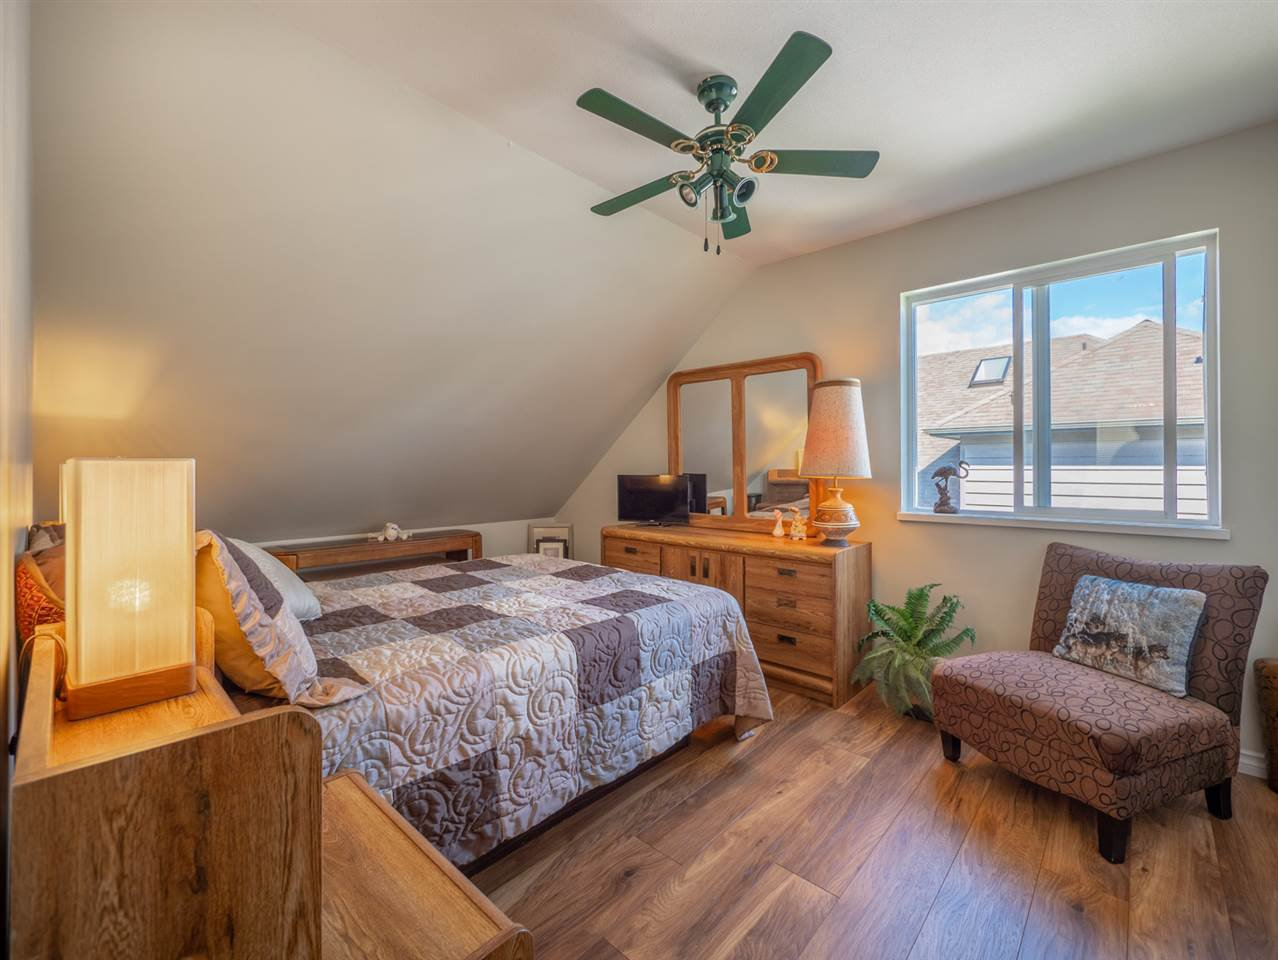 """Photo 9: Photos: 6148 POISE ISLAND Drive in Sechelt: Sechelt District House for sale in """"POISE ISLAND"""" (Sunshine Coast)  : MLS®# R2426642"""